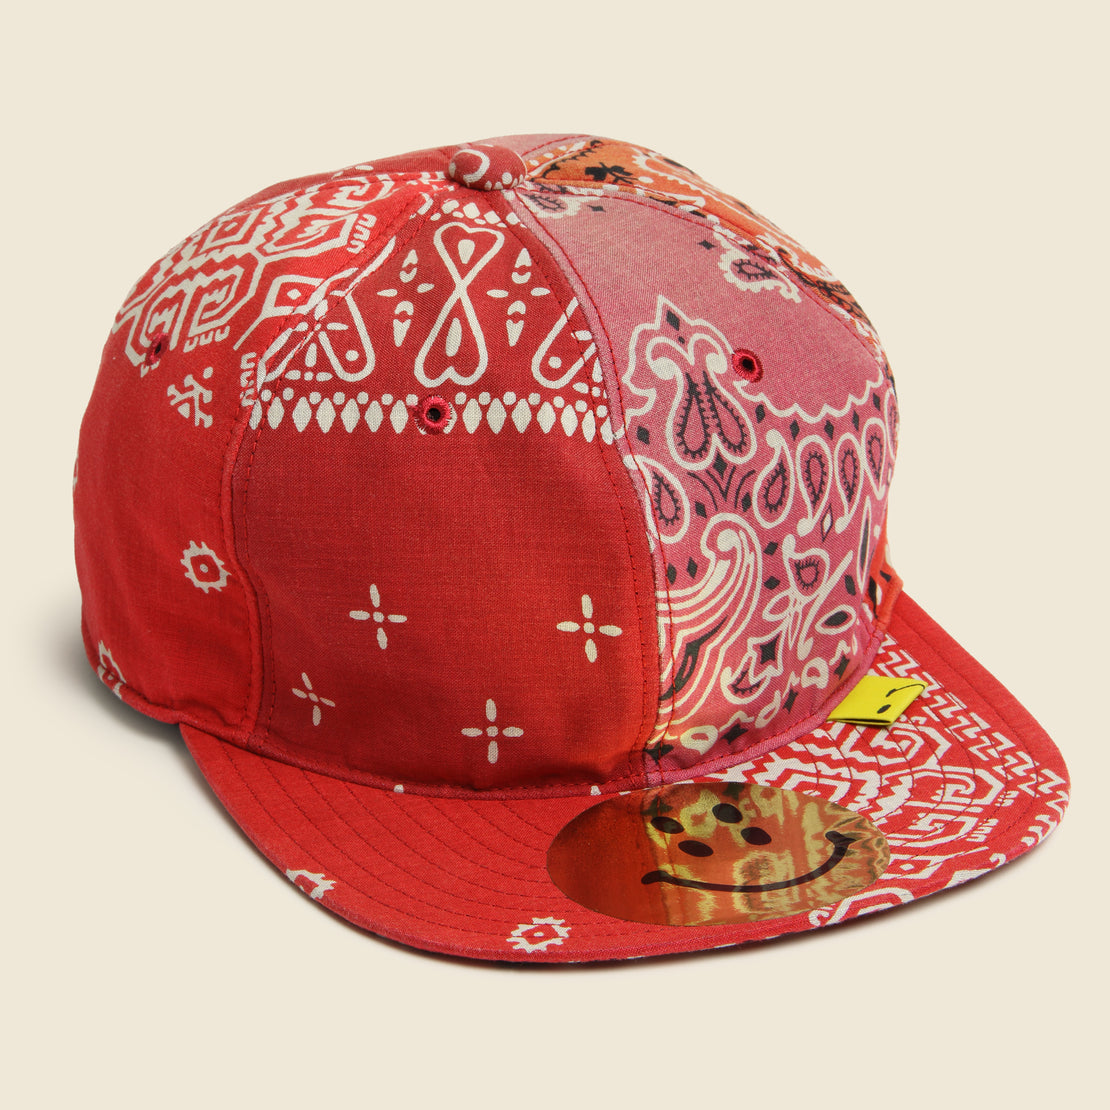 Kapital Bandana Patchwork Baseball Cap - Red